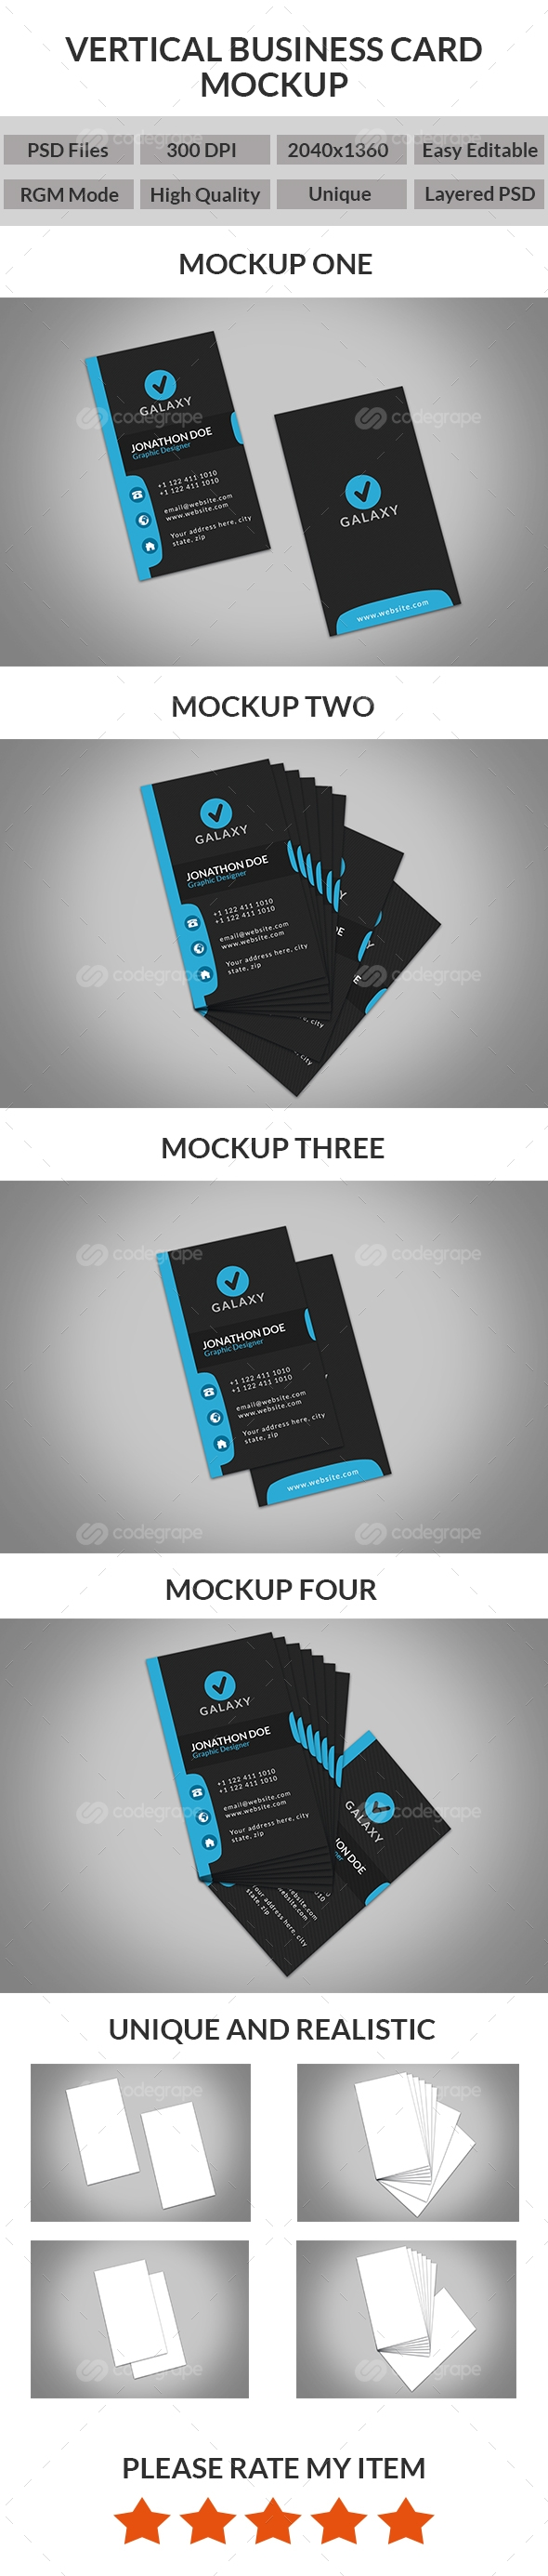 Unique Realistic Vertical Business Card Mockups